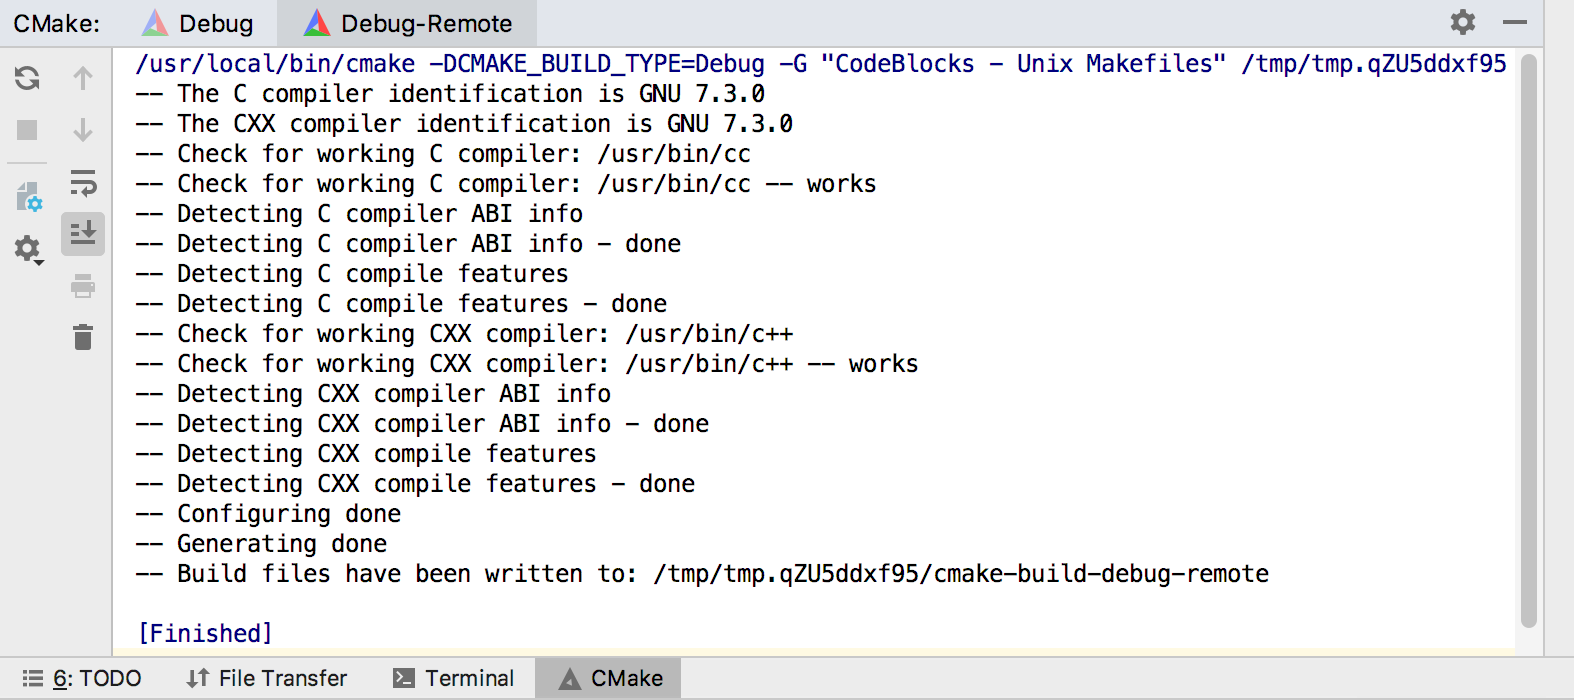 reloading cmake project with remote toolchain